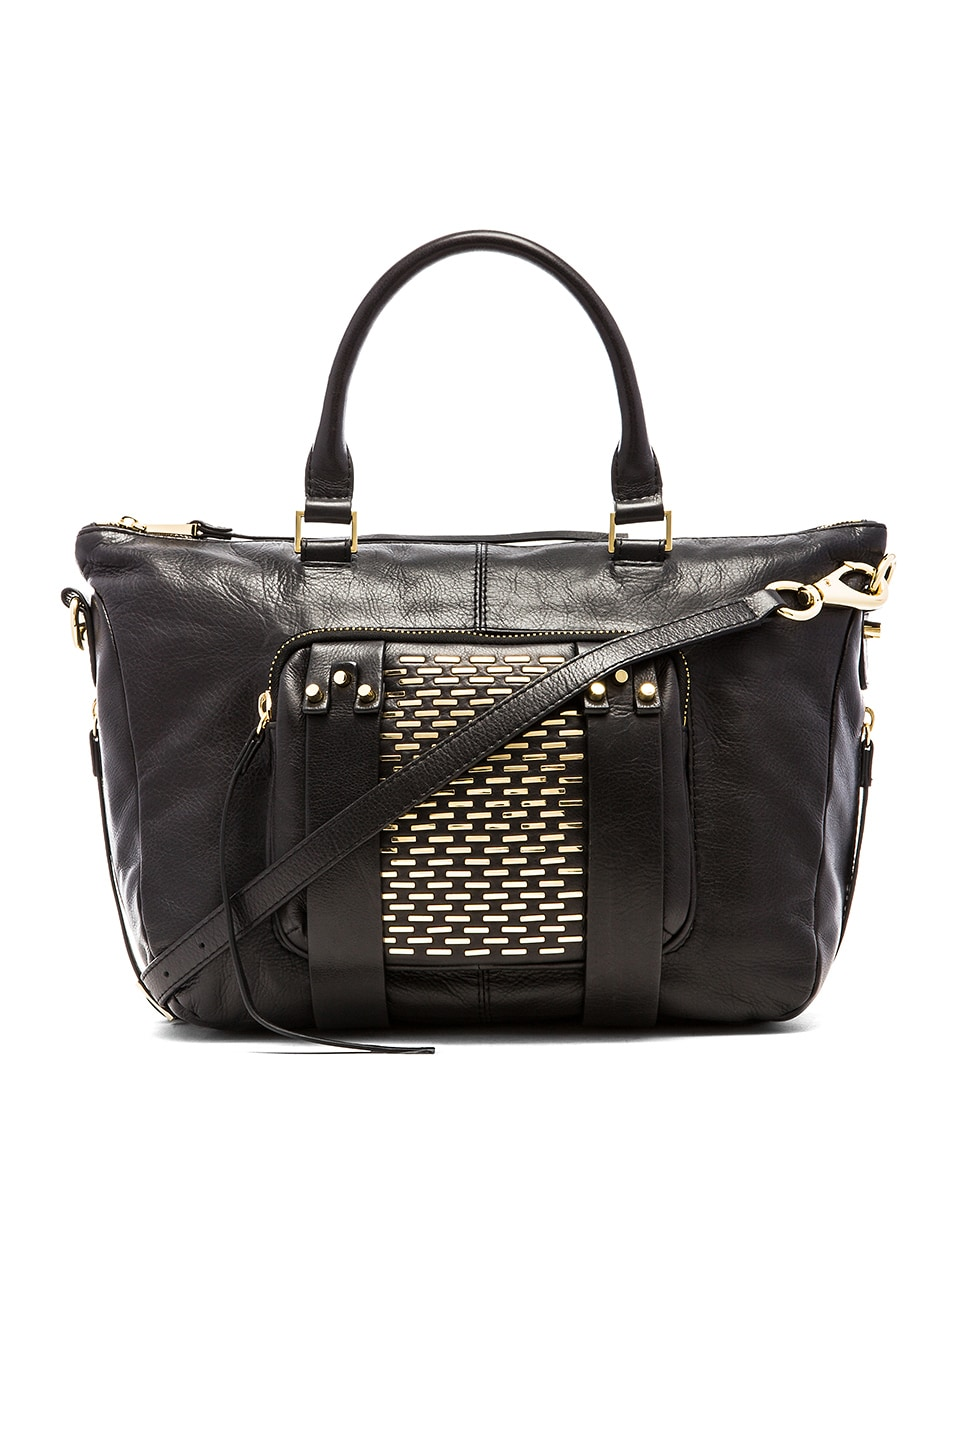 she + lo Next Chapter Studded Small Satchel Bag in Studded Black